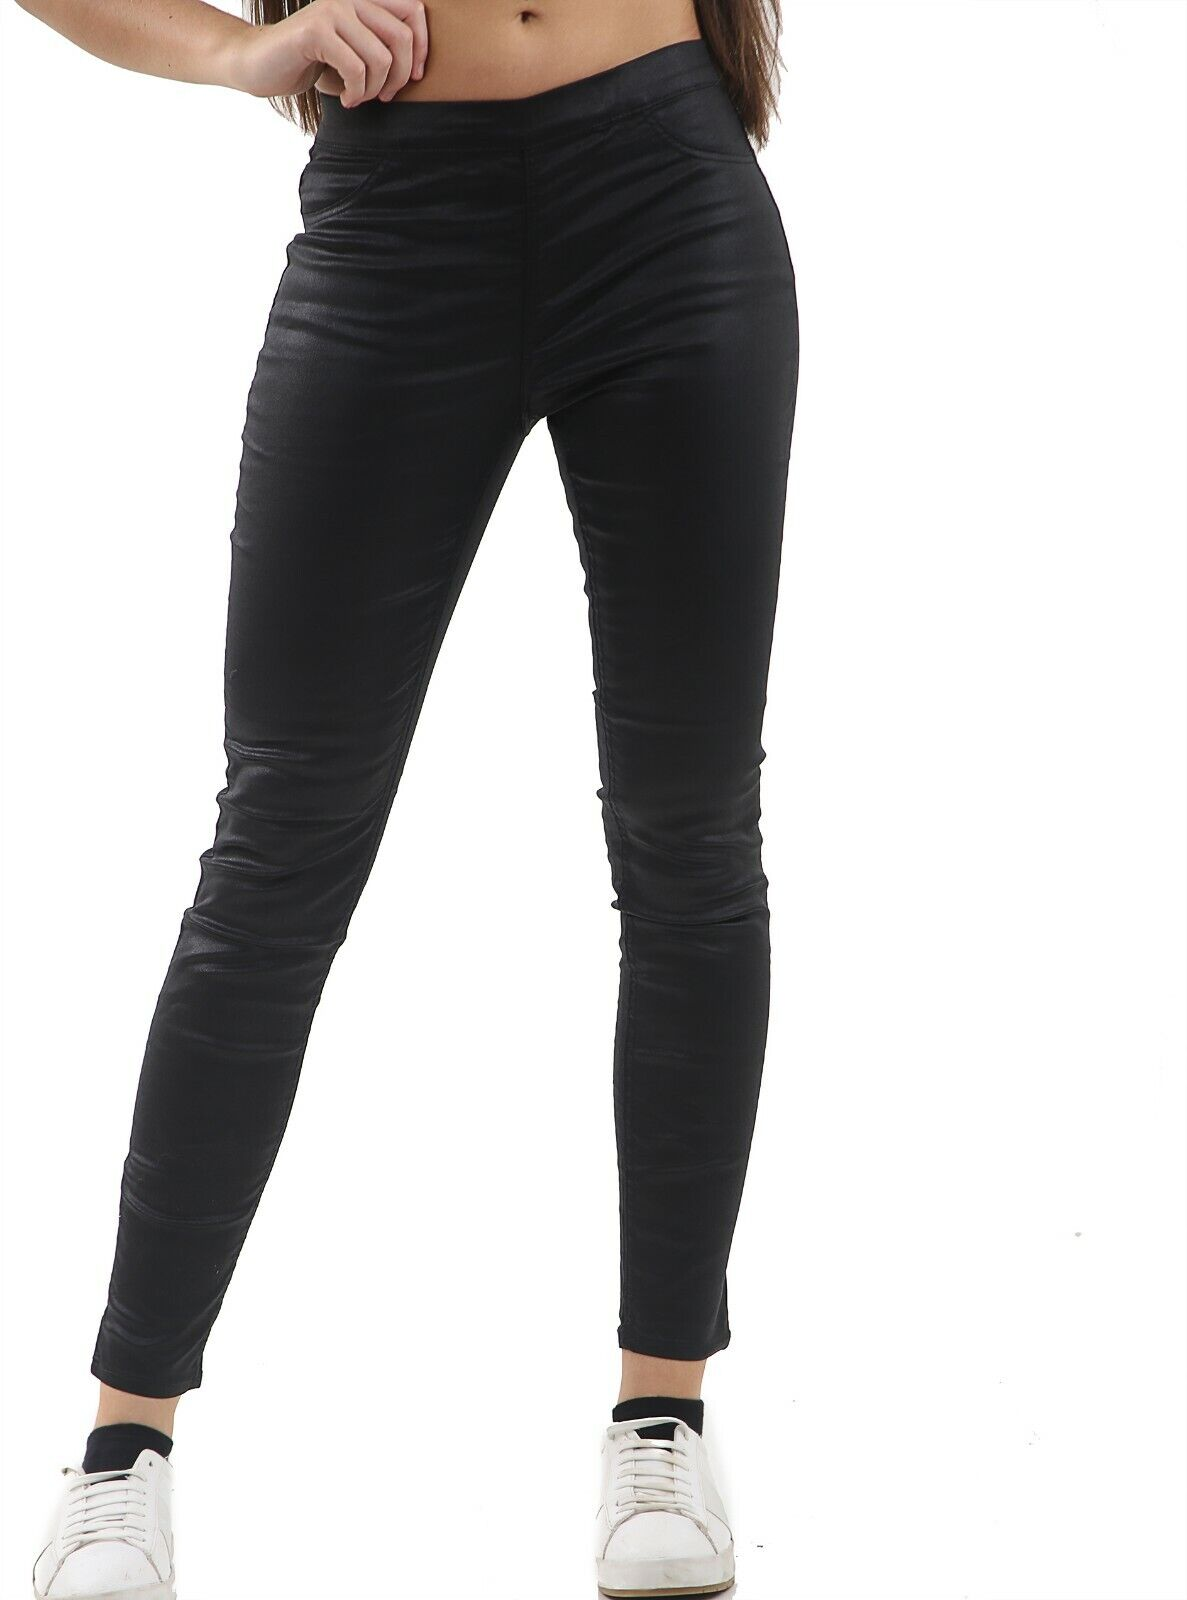 Evvor Womens Jean Zip Up Leather Look Skinny Fit Jeggings